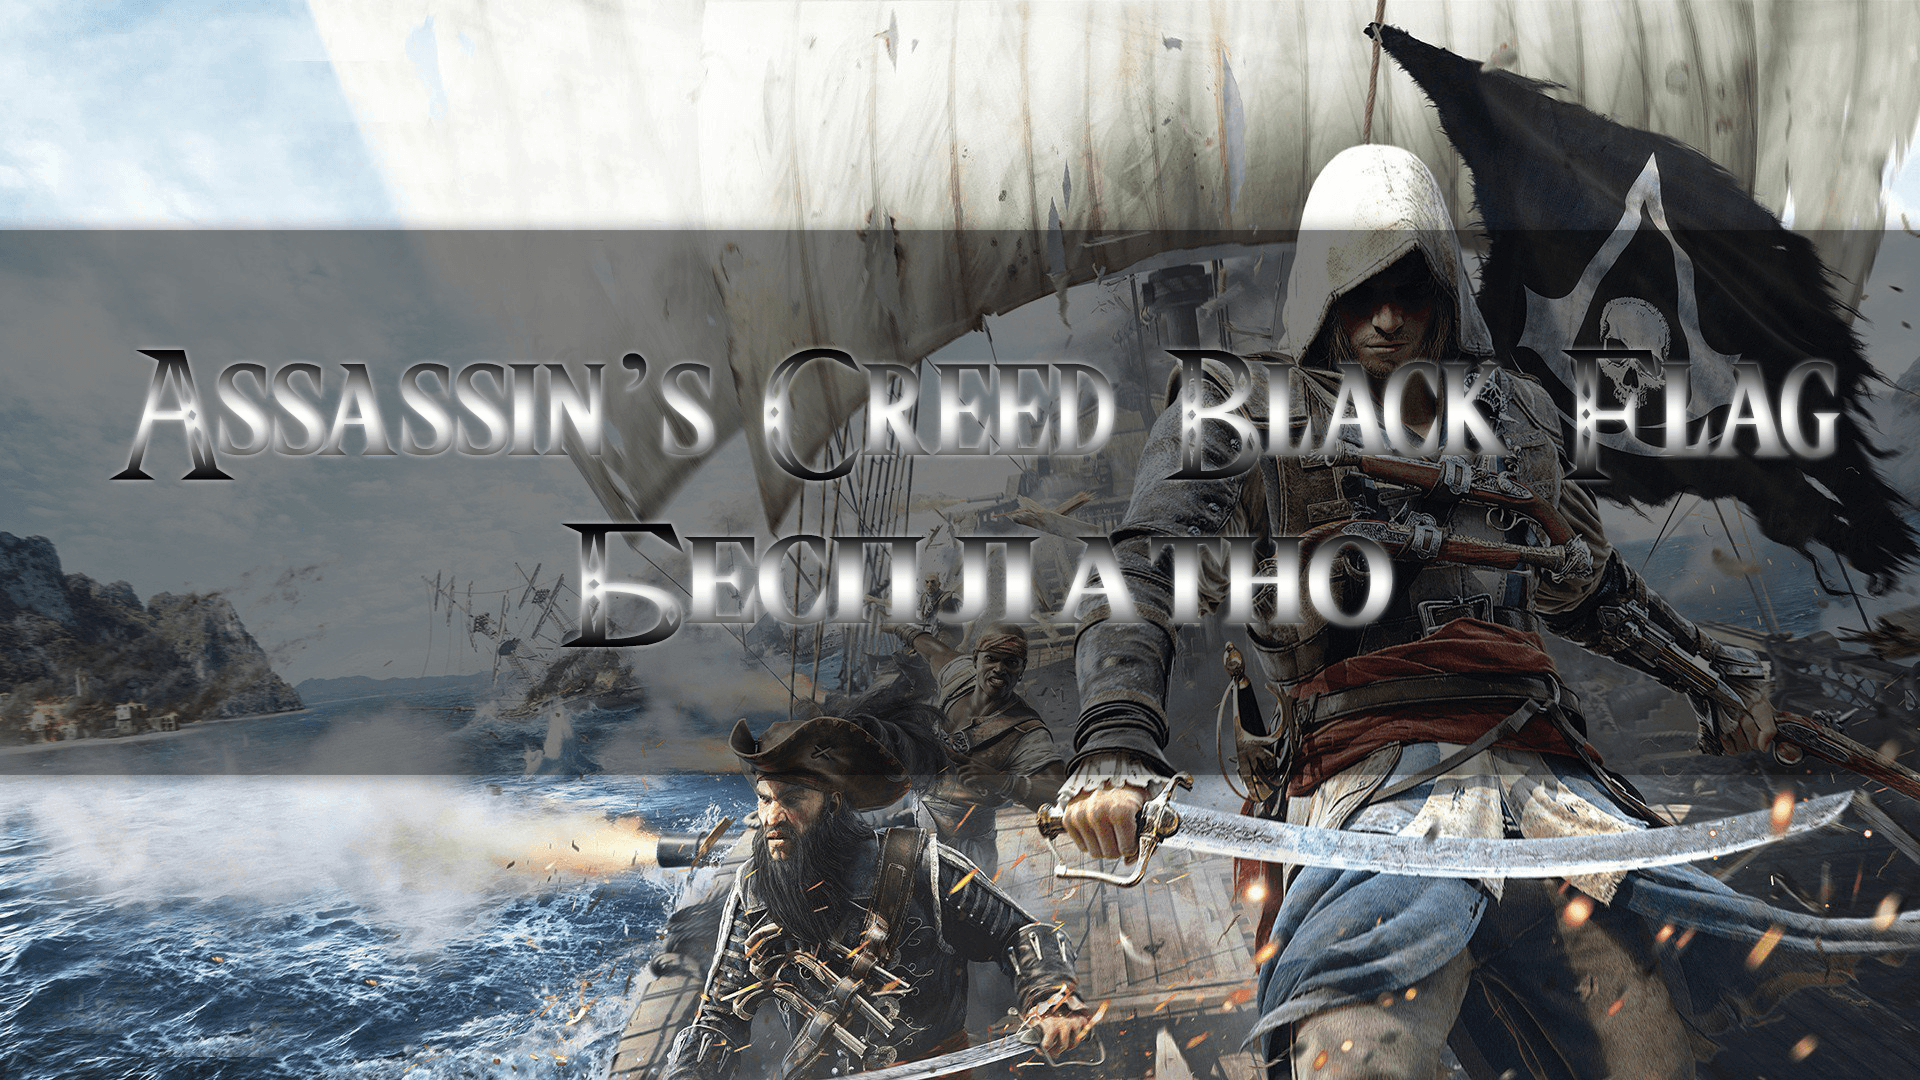 https://mmcs.pro/assassins-creed-black-flag/